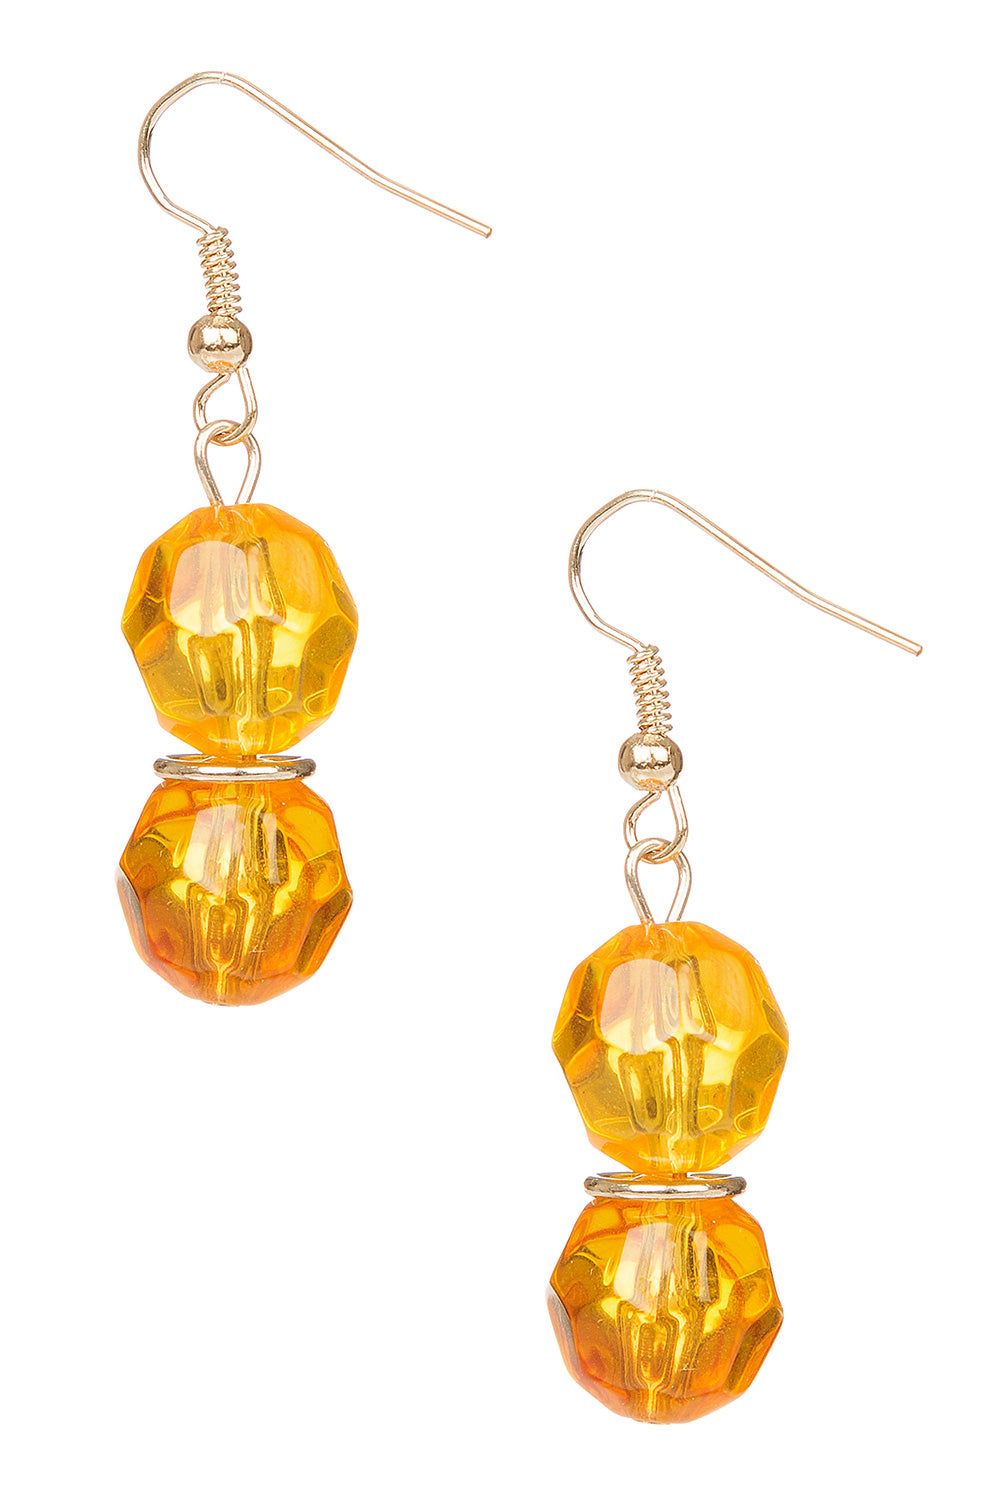 Type 3 Ample Amber Earrings